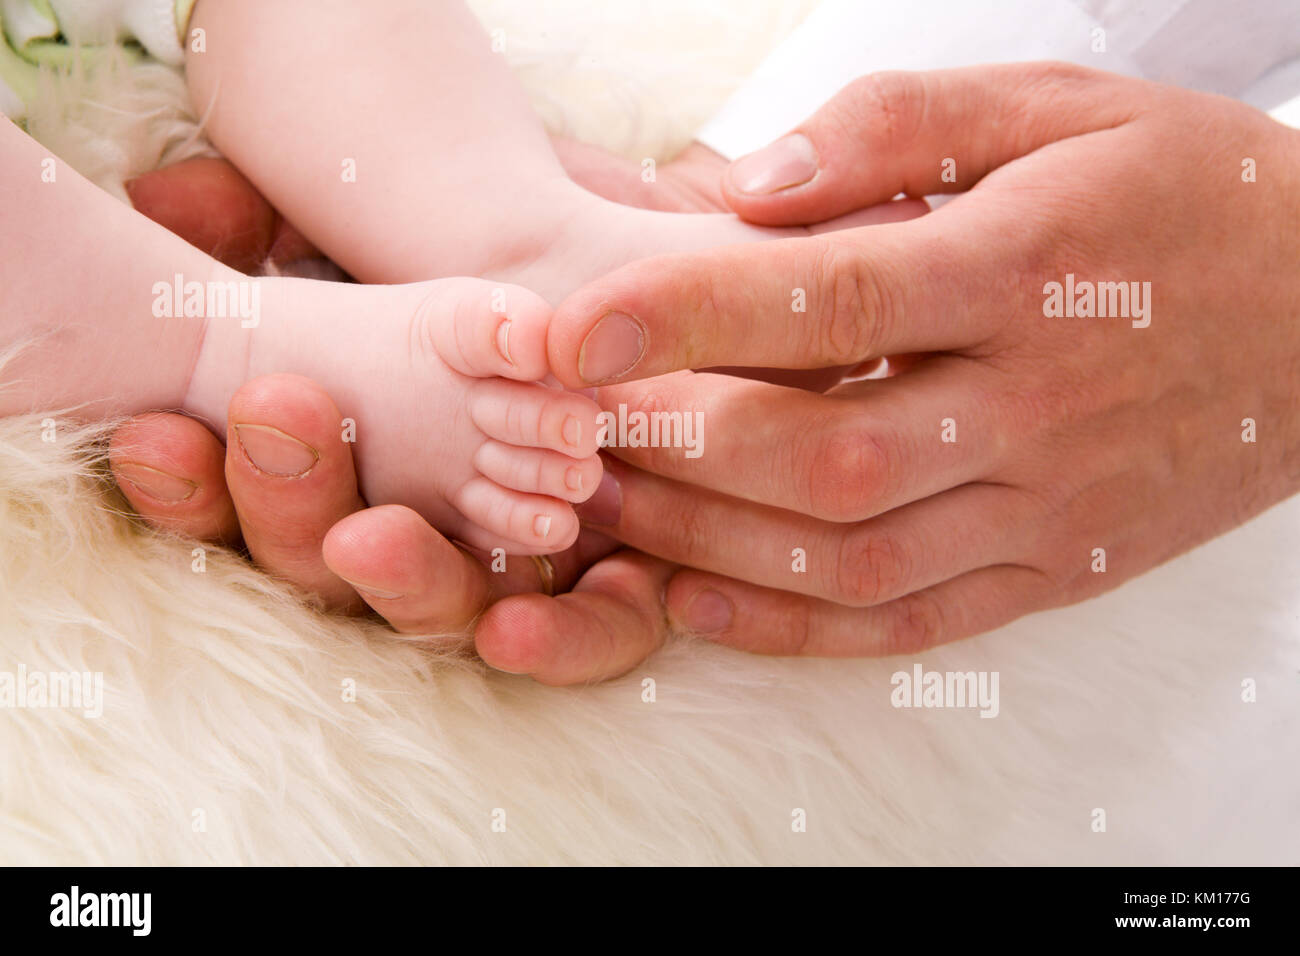 Baby's Feet in Father's Palms over white fur Stock Photo